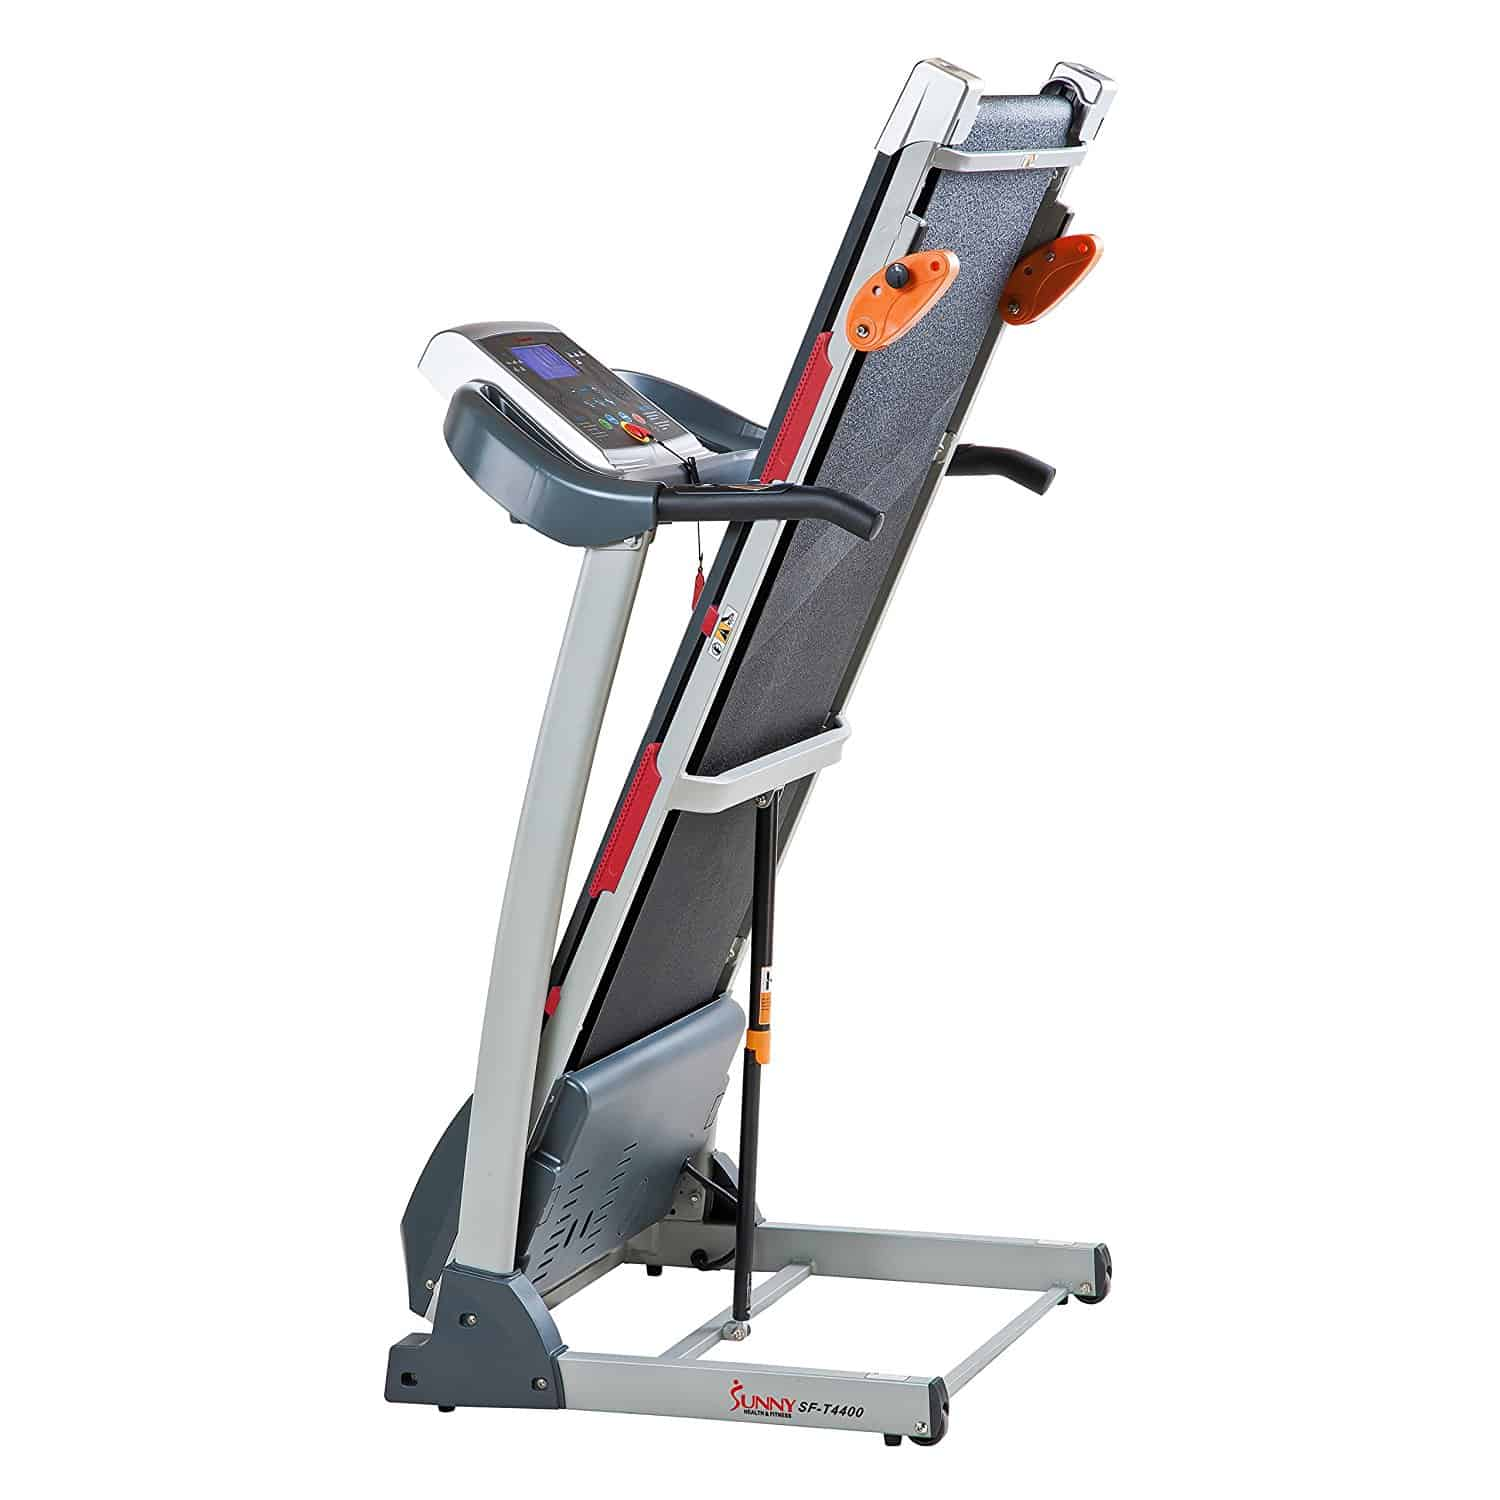 Good Treadmill For Home Use